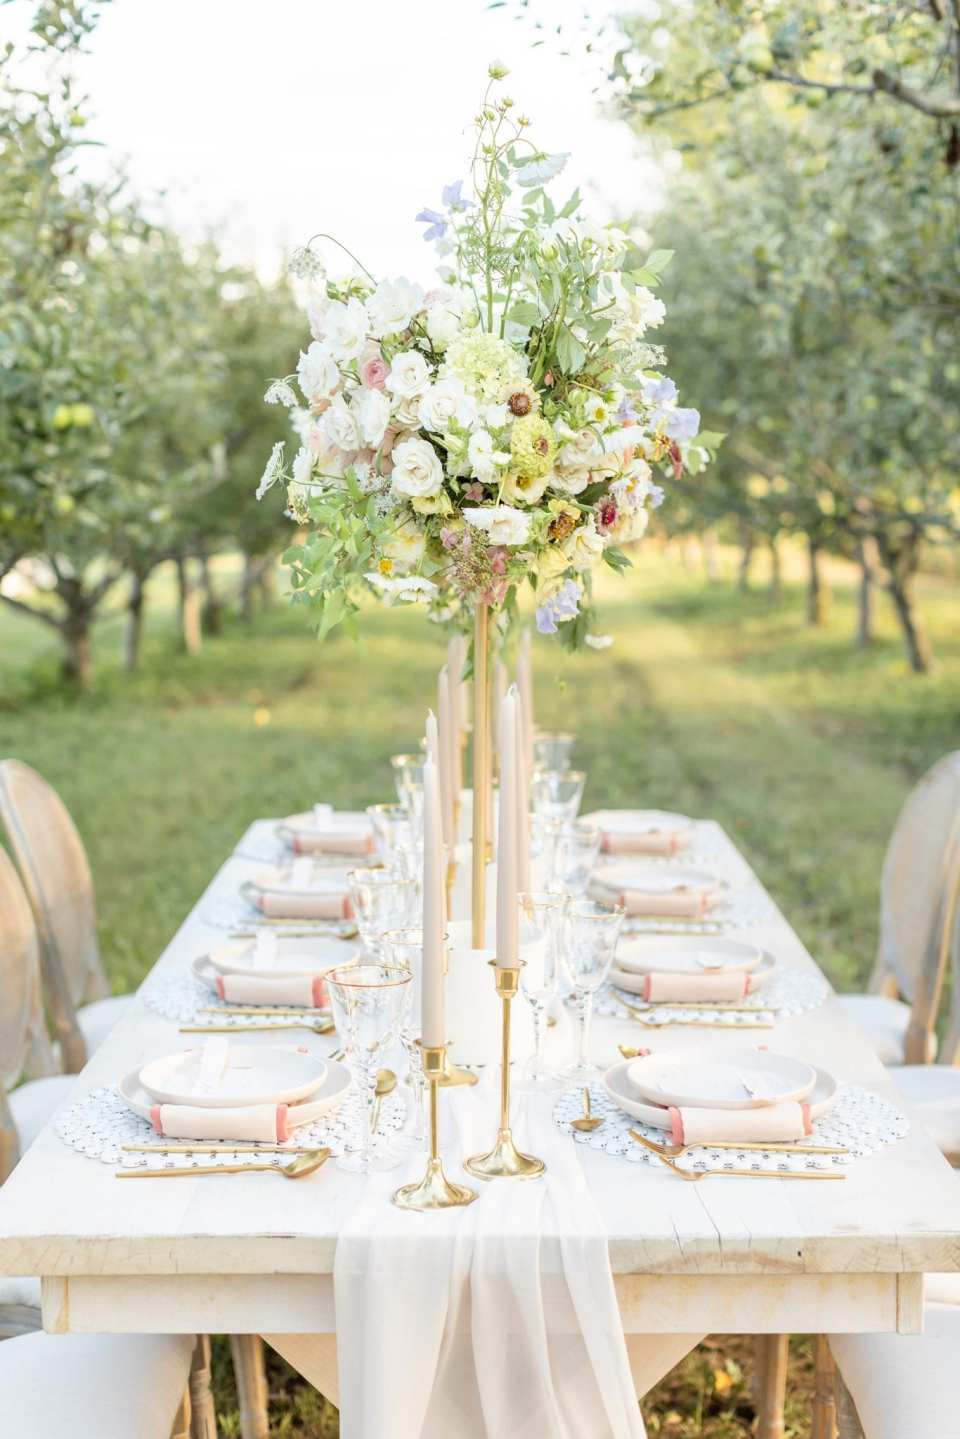 Backyard wedding tips hire a wedding coordinator. Wedding tablescape for an intimate micro wedding between the rows of pear trees at Kurtz Orchard designed by Kassia Tjia Events